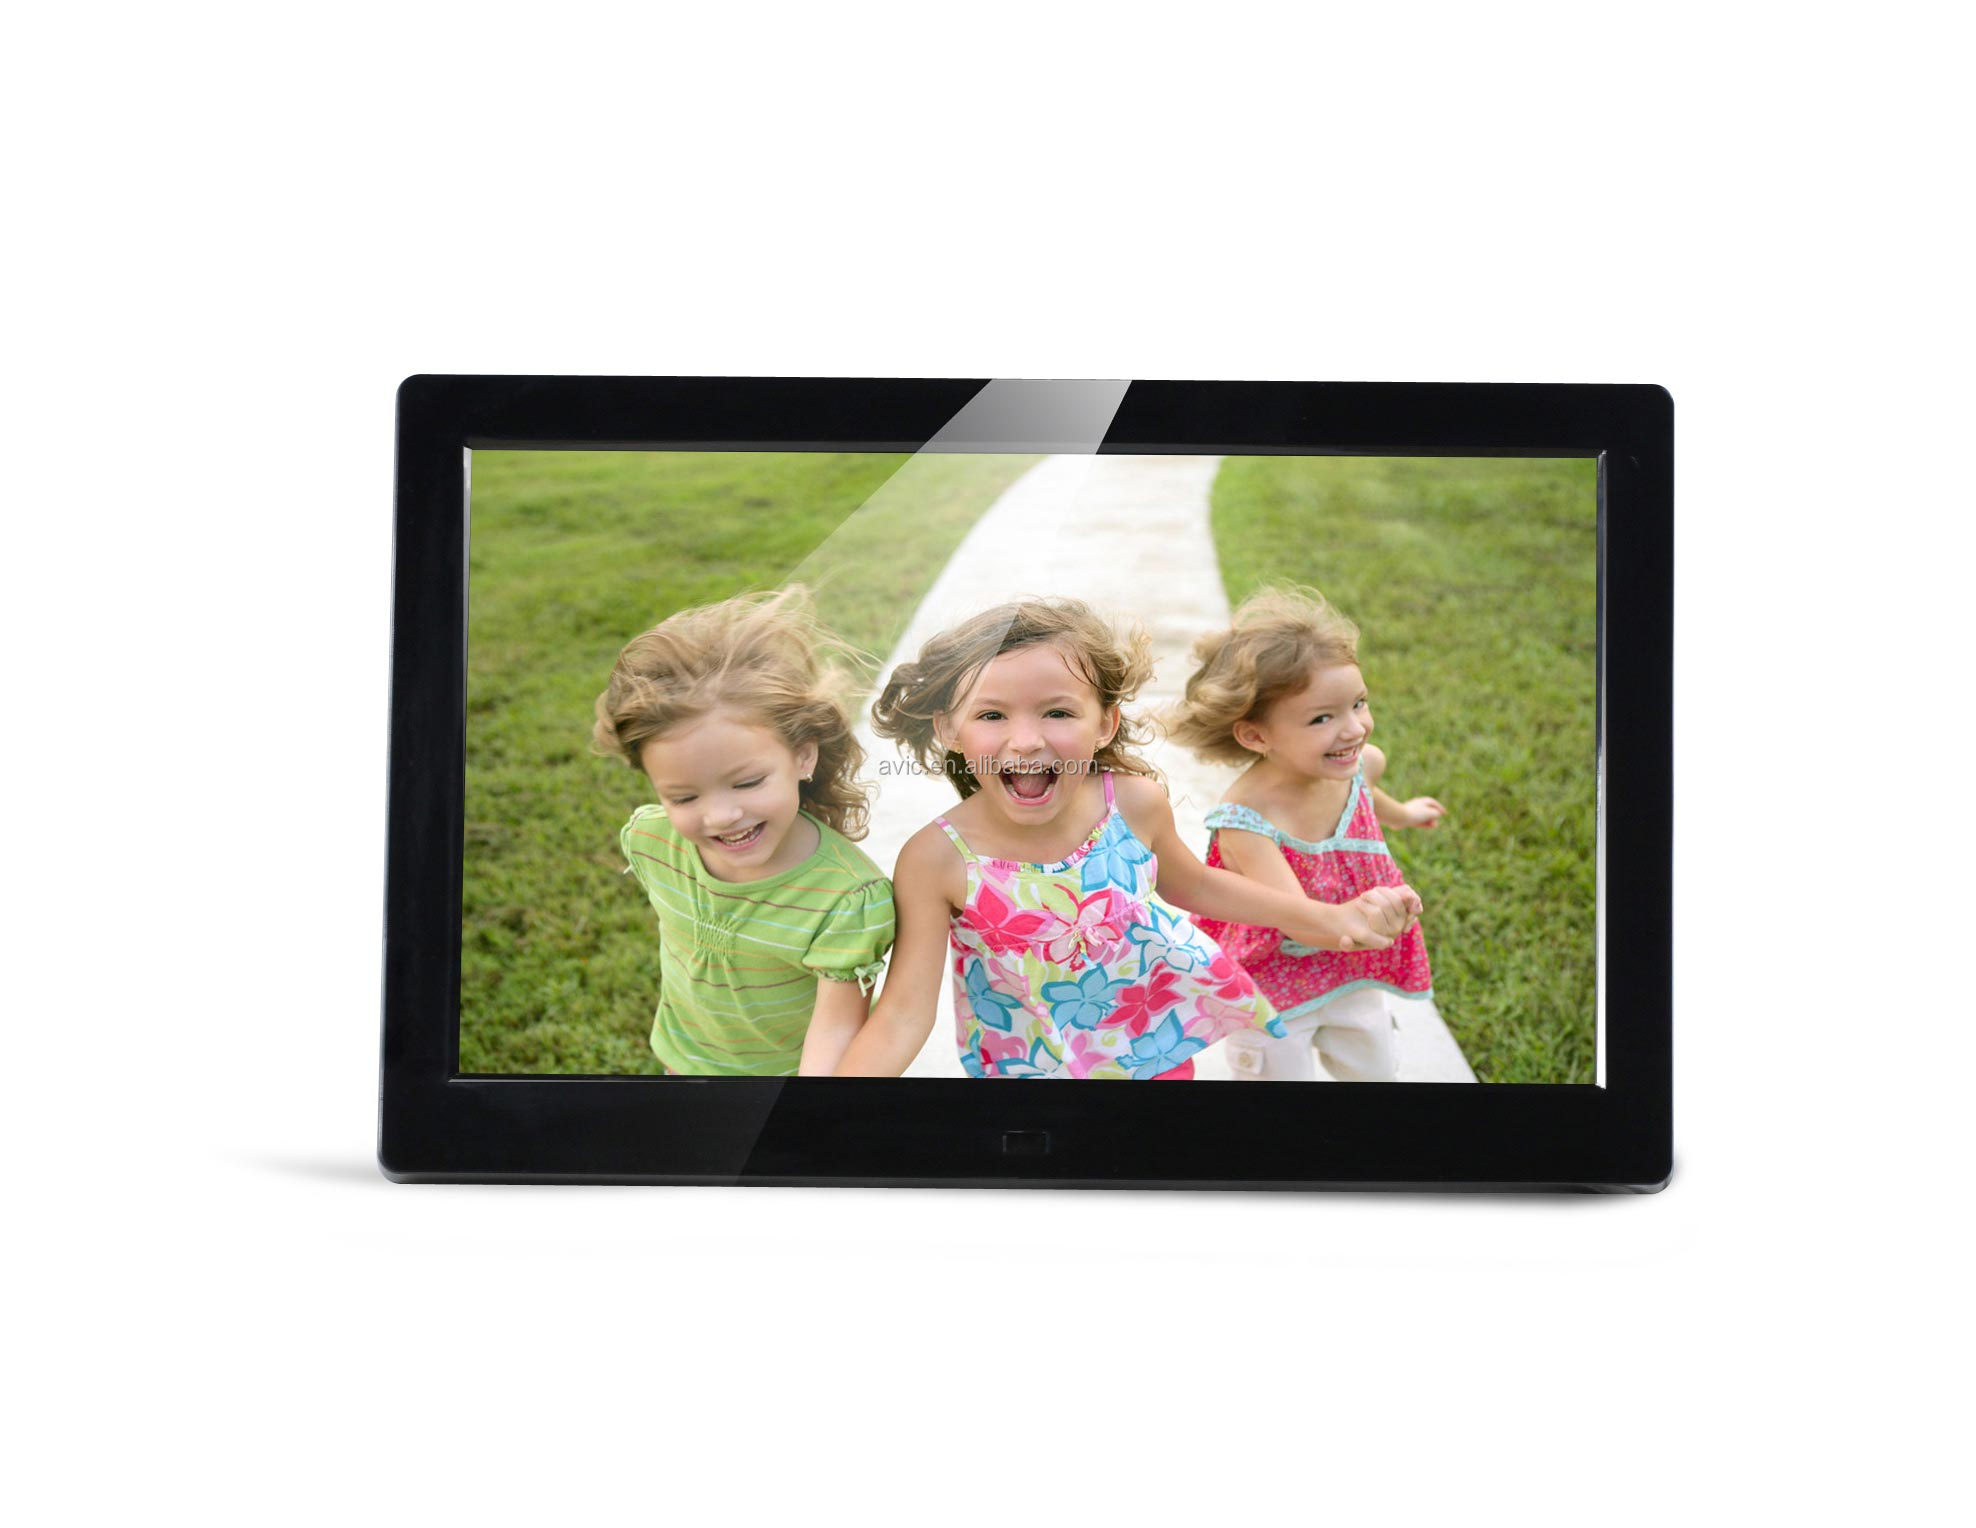 Wholesale digital photo frame wholesale digital photo frame wholesale digital photo frame wholesale digital photo frame suppliers and manufacturers at alibaba jeuxipadfo Image collections